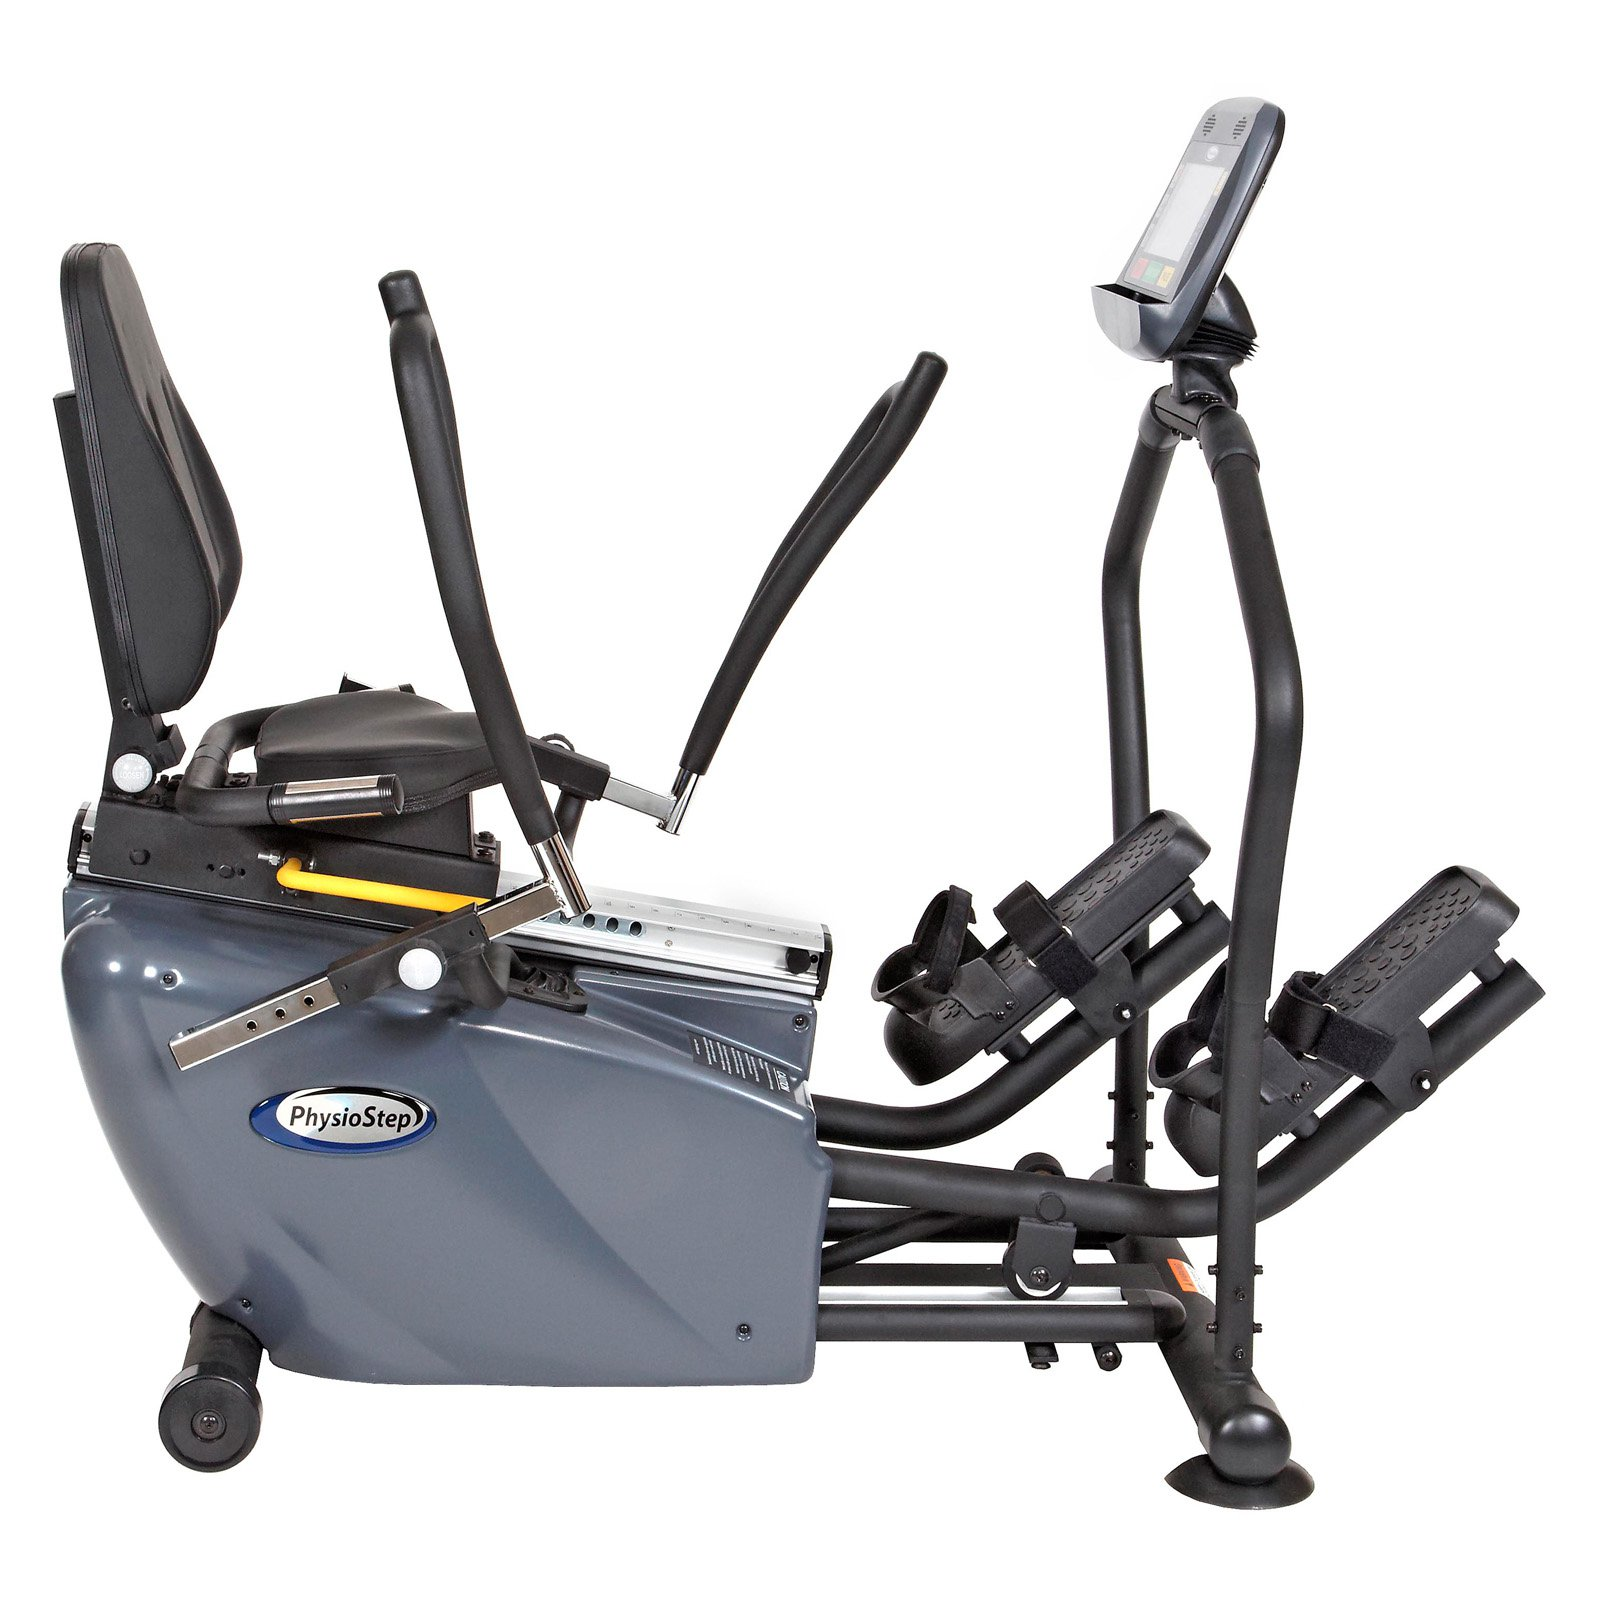 HEALTH CARE INTERNATIONAL RXT-1000 PhysioStep Recumbent E...